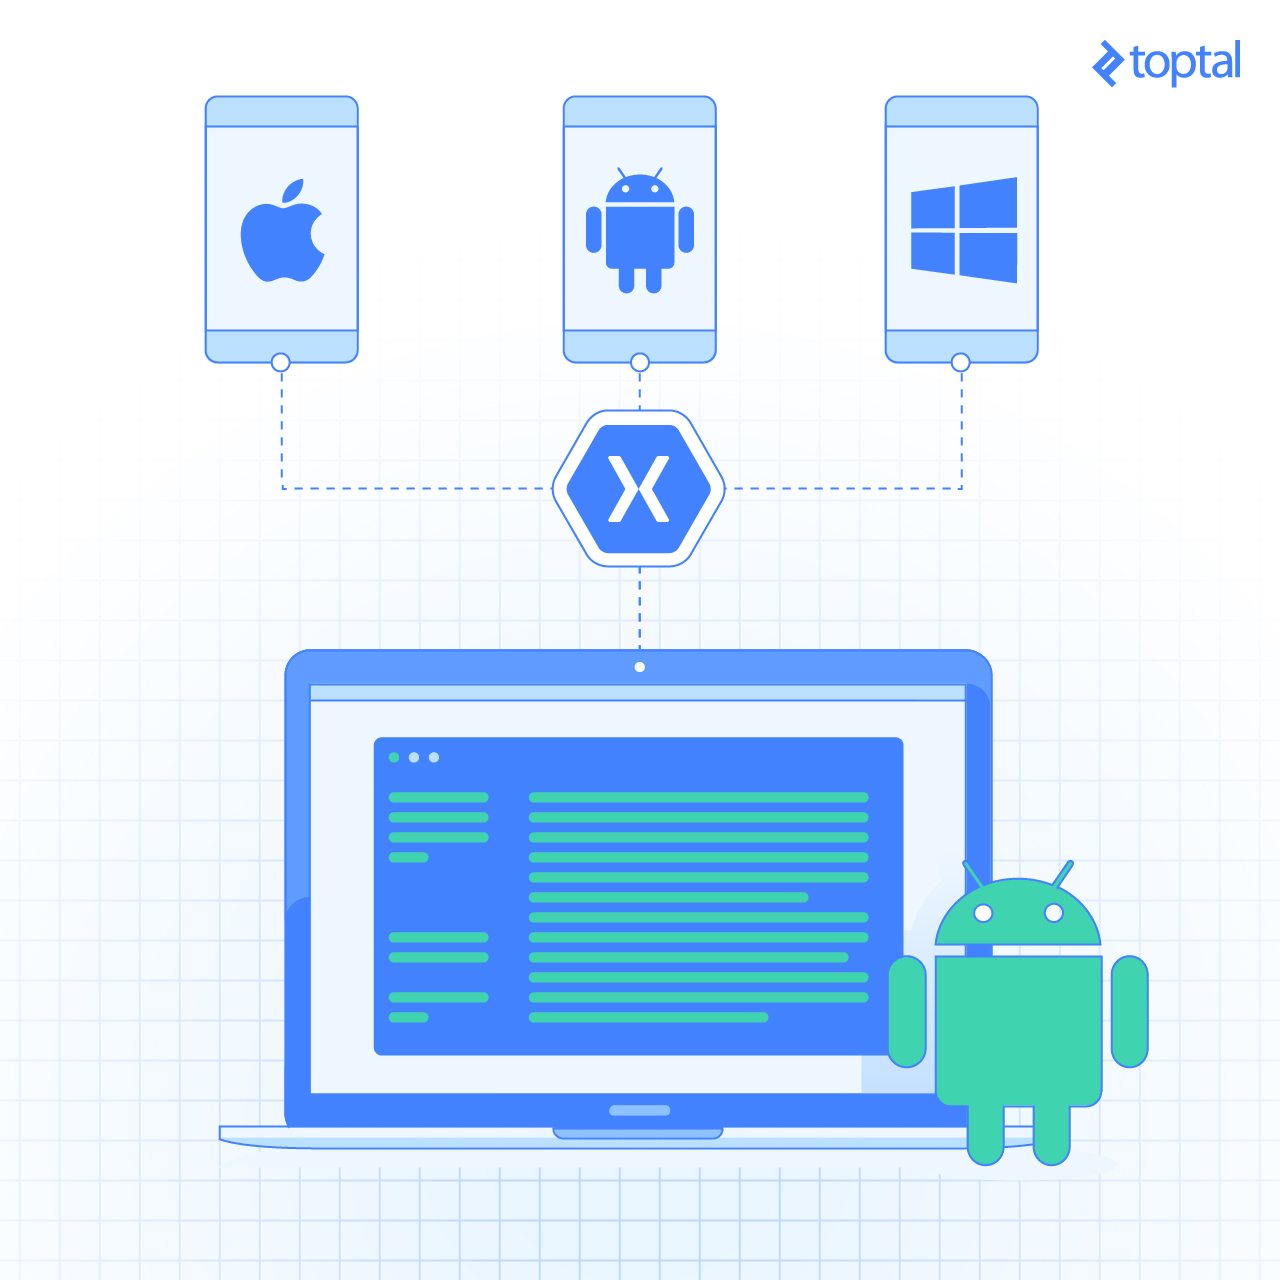 Building Cross-platform Apps with Xamarin: Perspective of an Android Developer - Image 1